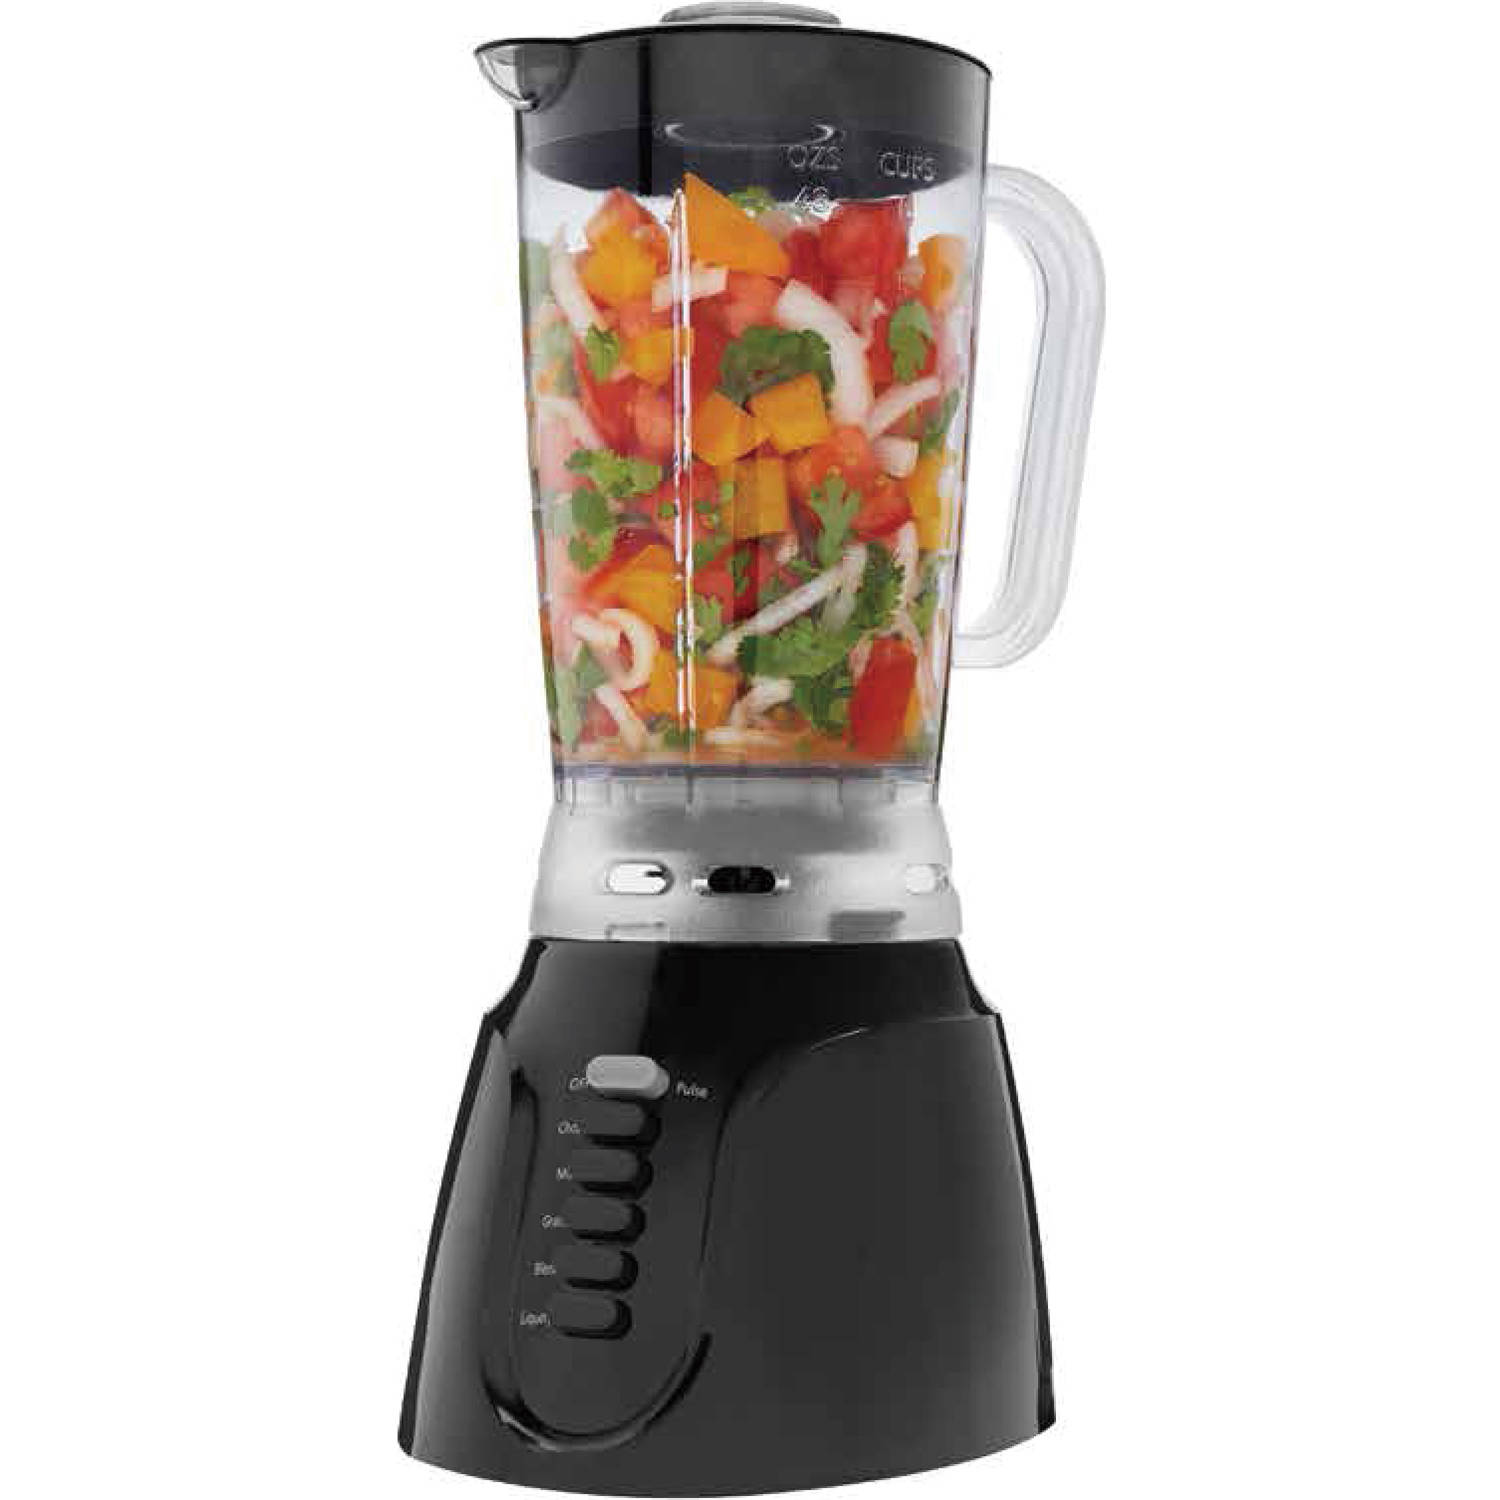 Mainstays 1.5L,6-Speed Blender, Black